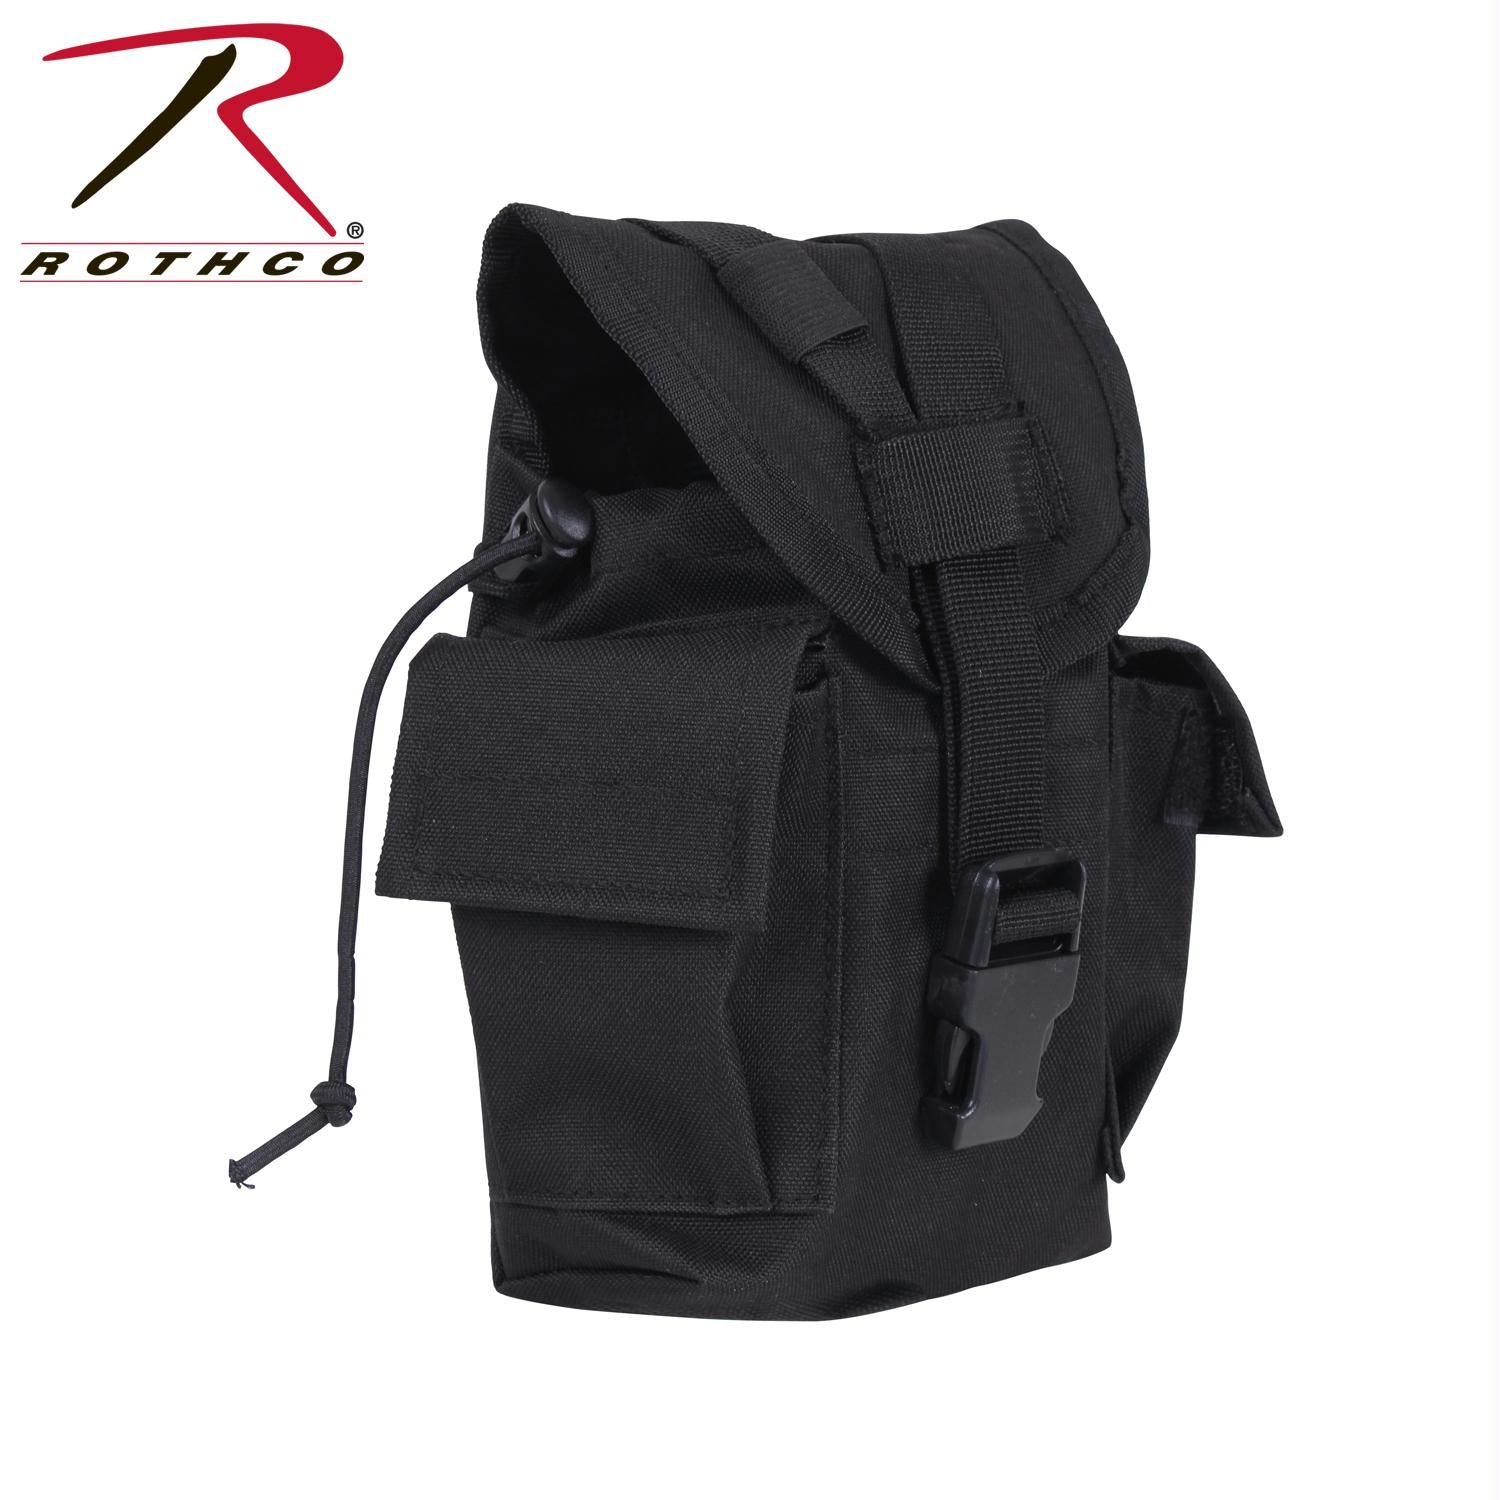 Rothco MOLLE II Canteen & Utility Pouch - Black